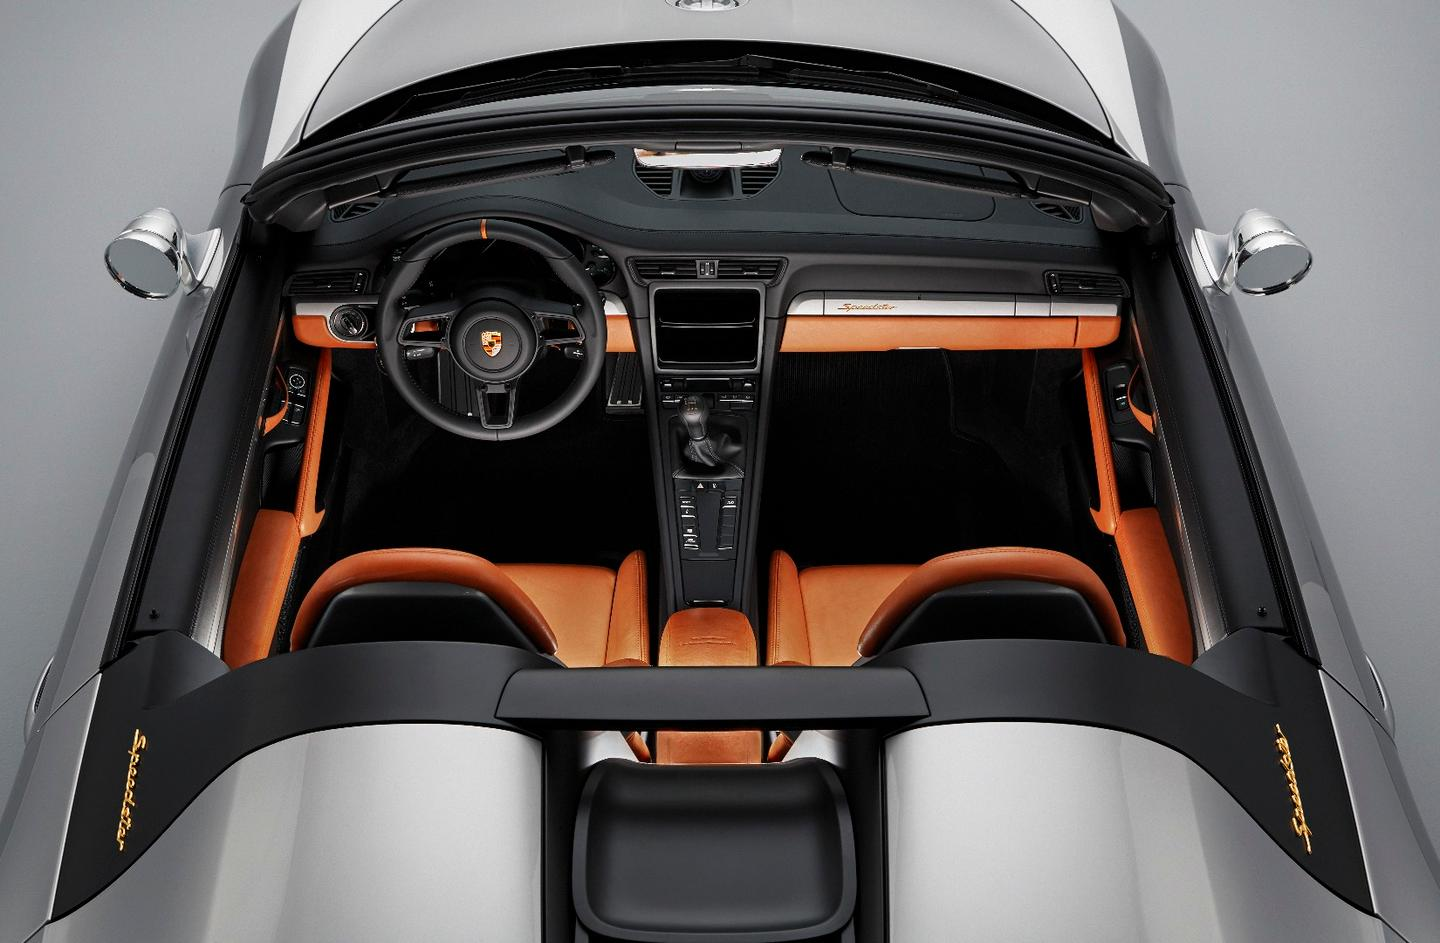 Porsche 911 Speedster Concept: stripped-back cabin has the nav screen, air-con and stereo removed